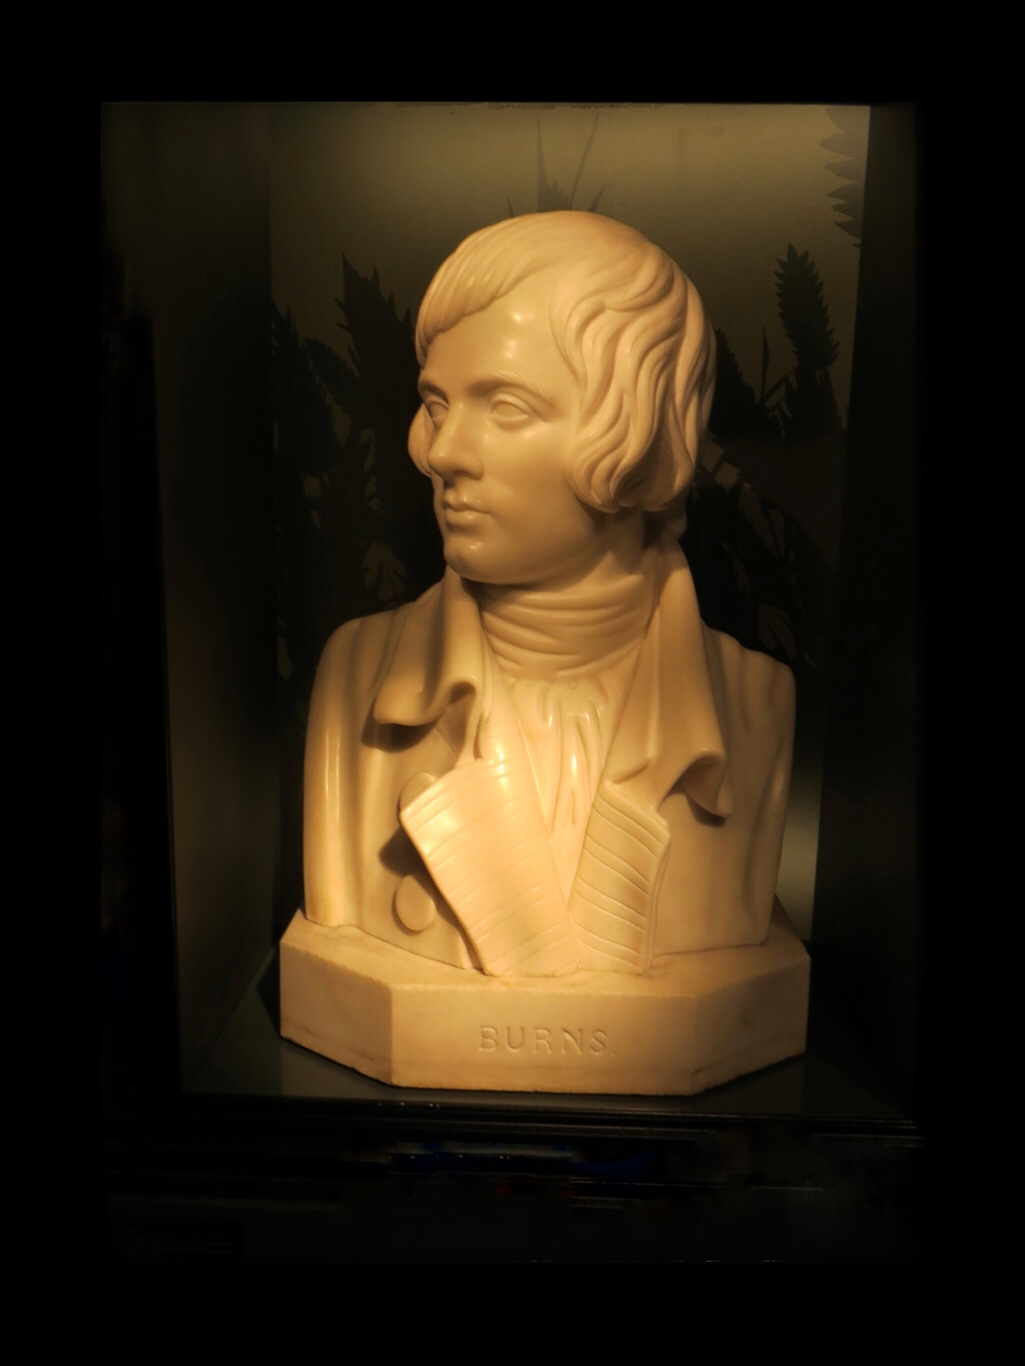 Celebrating New Year 2021 with Robert Burns